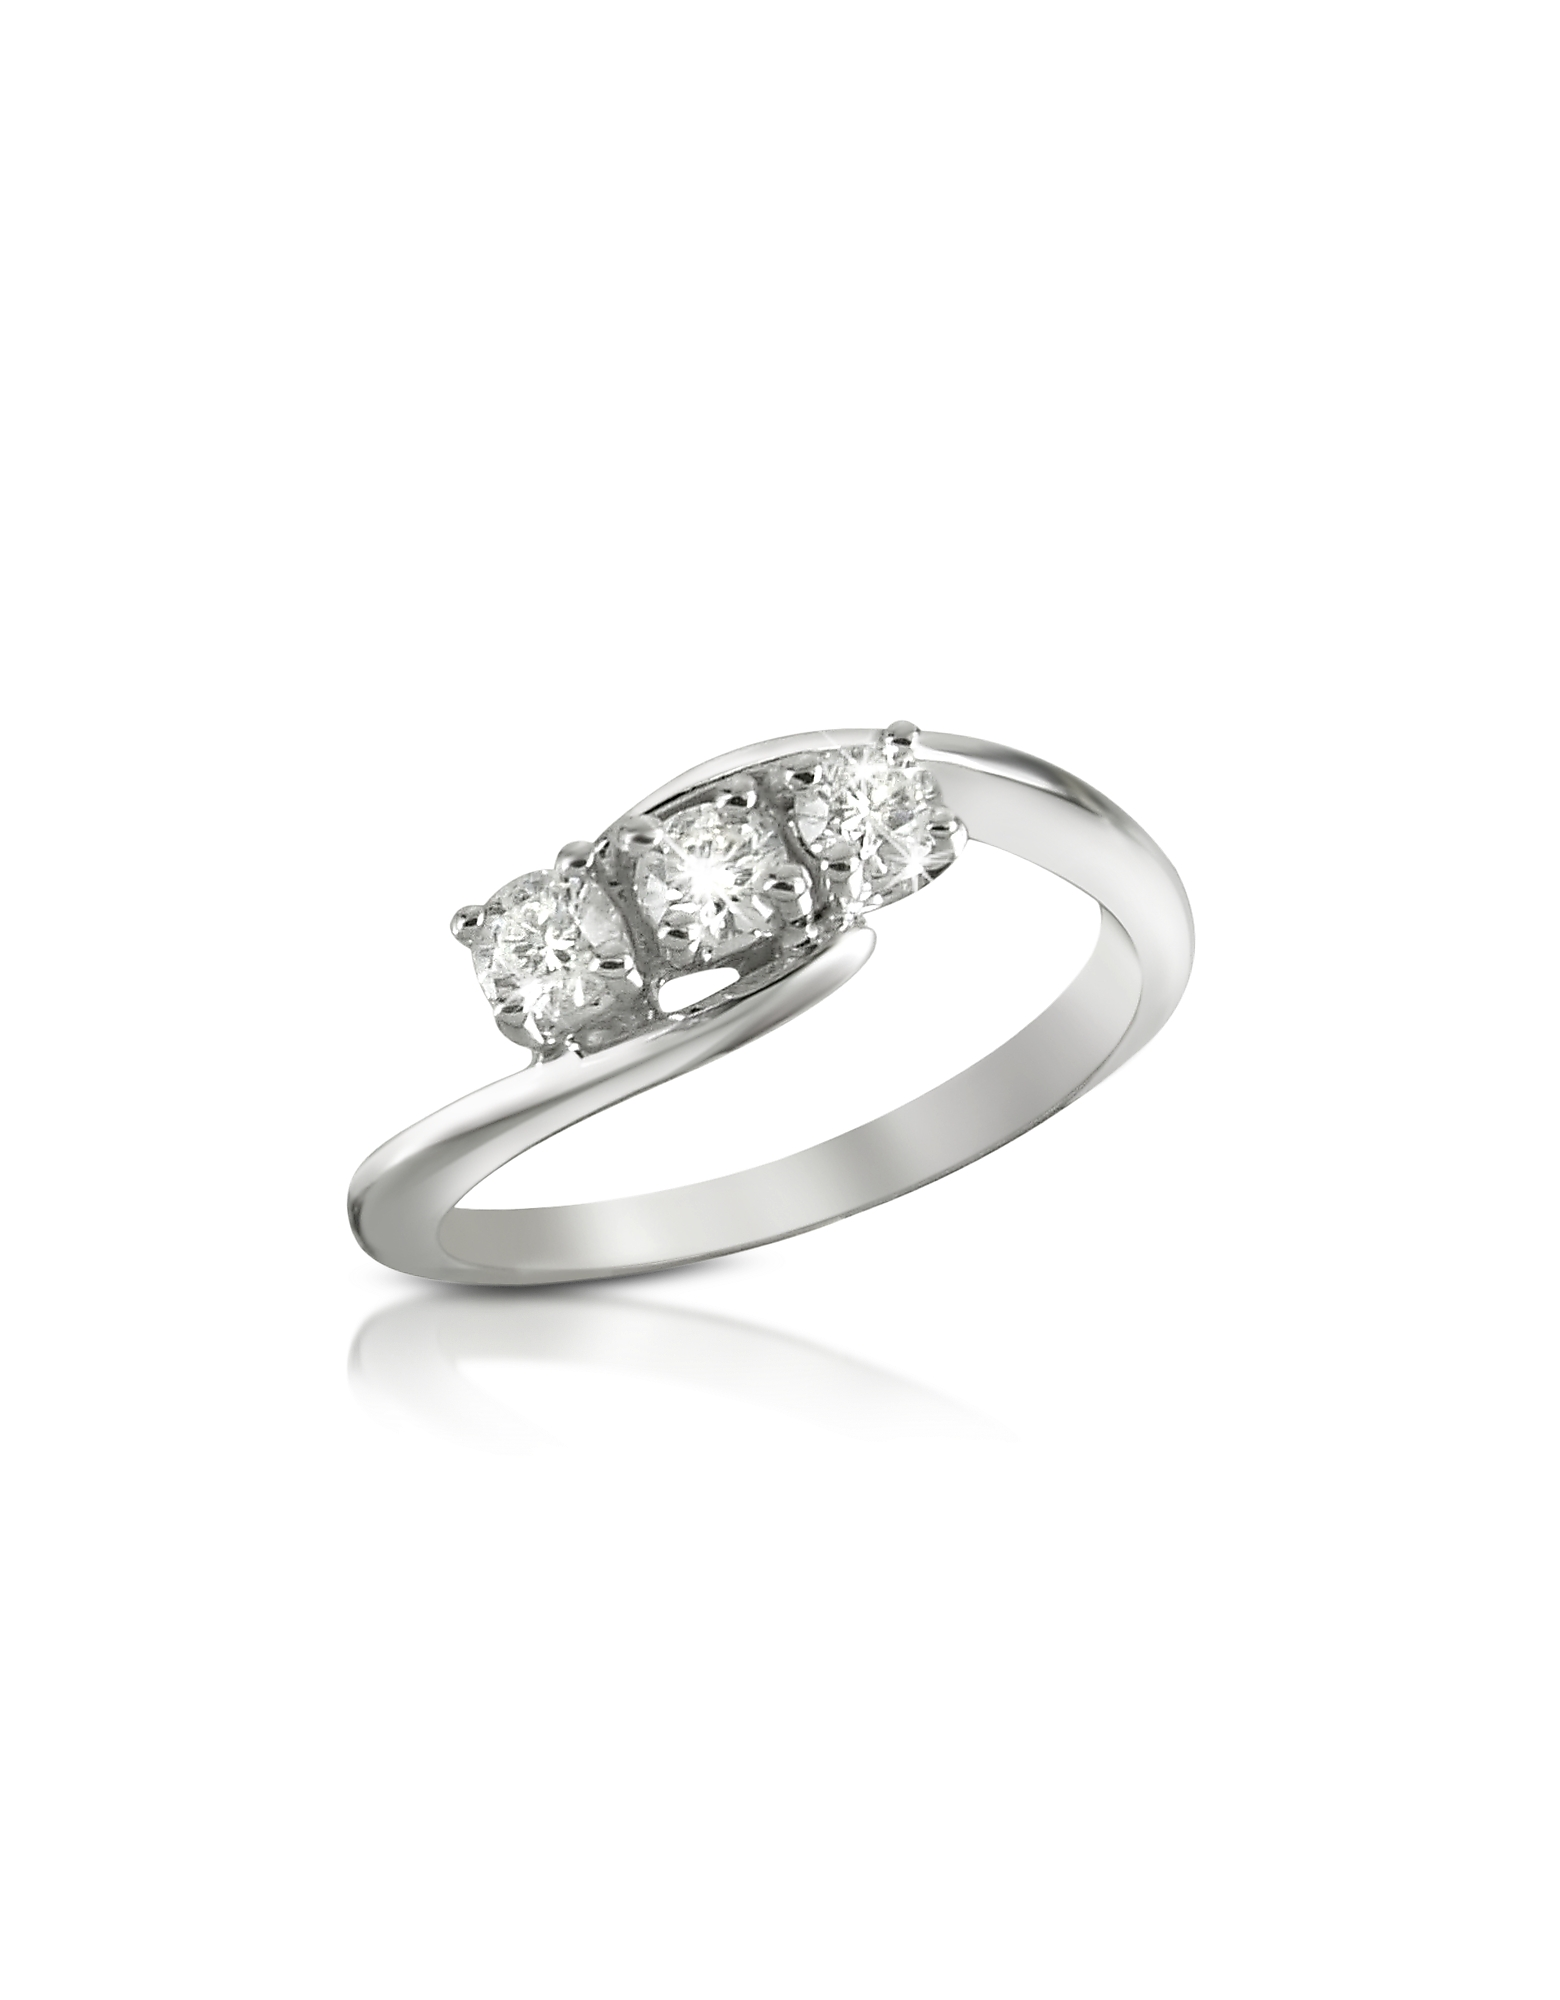 Forzieri Rings, 0.315 ct Three-Stone Diamond 18K Gold Ring